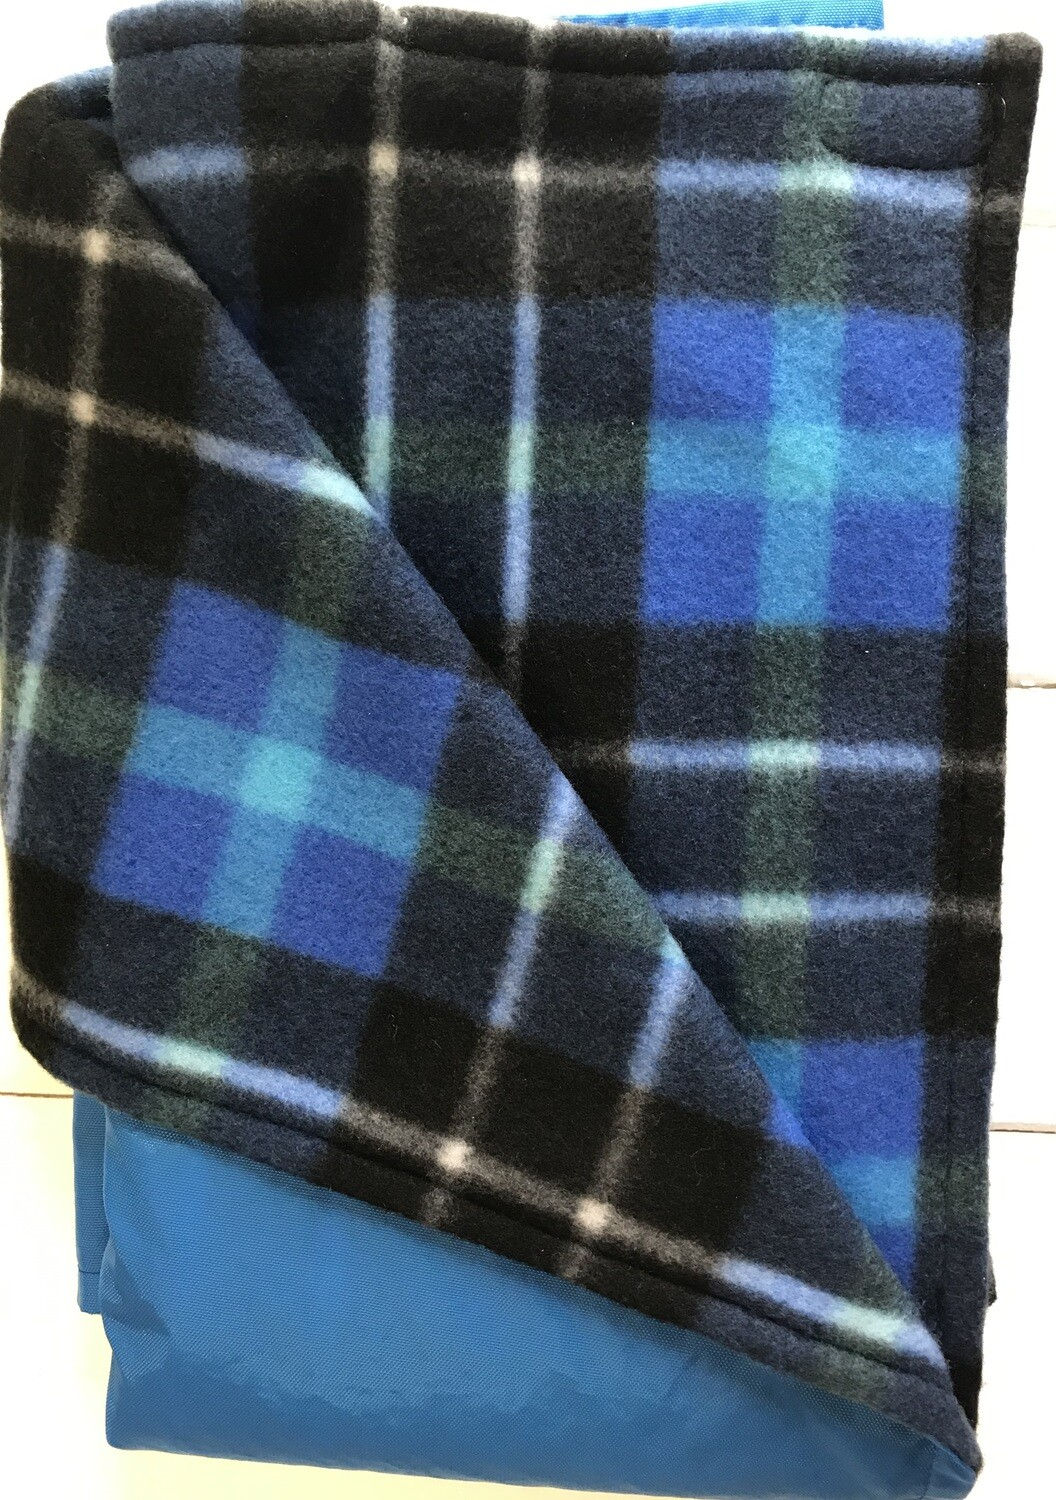 Pitt Patt Blanket 14C-Royal/Black and Blue Plaid